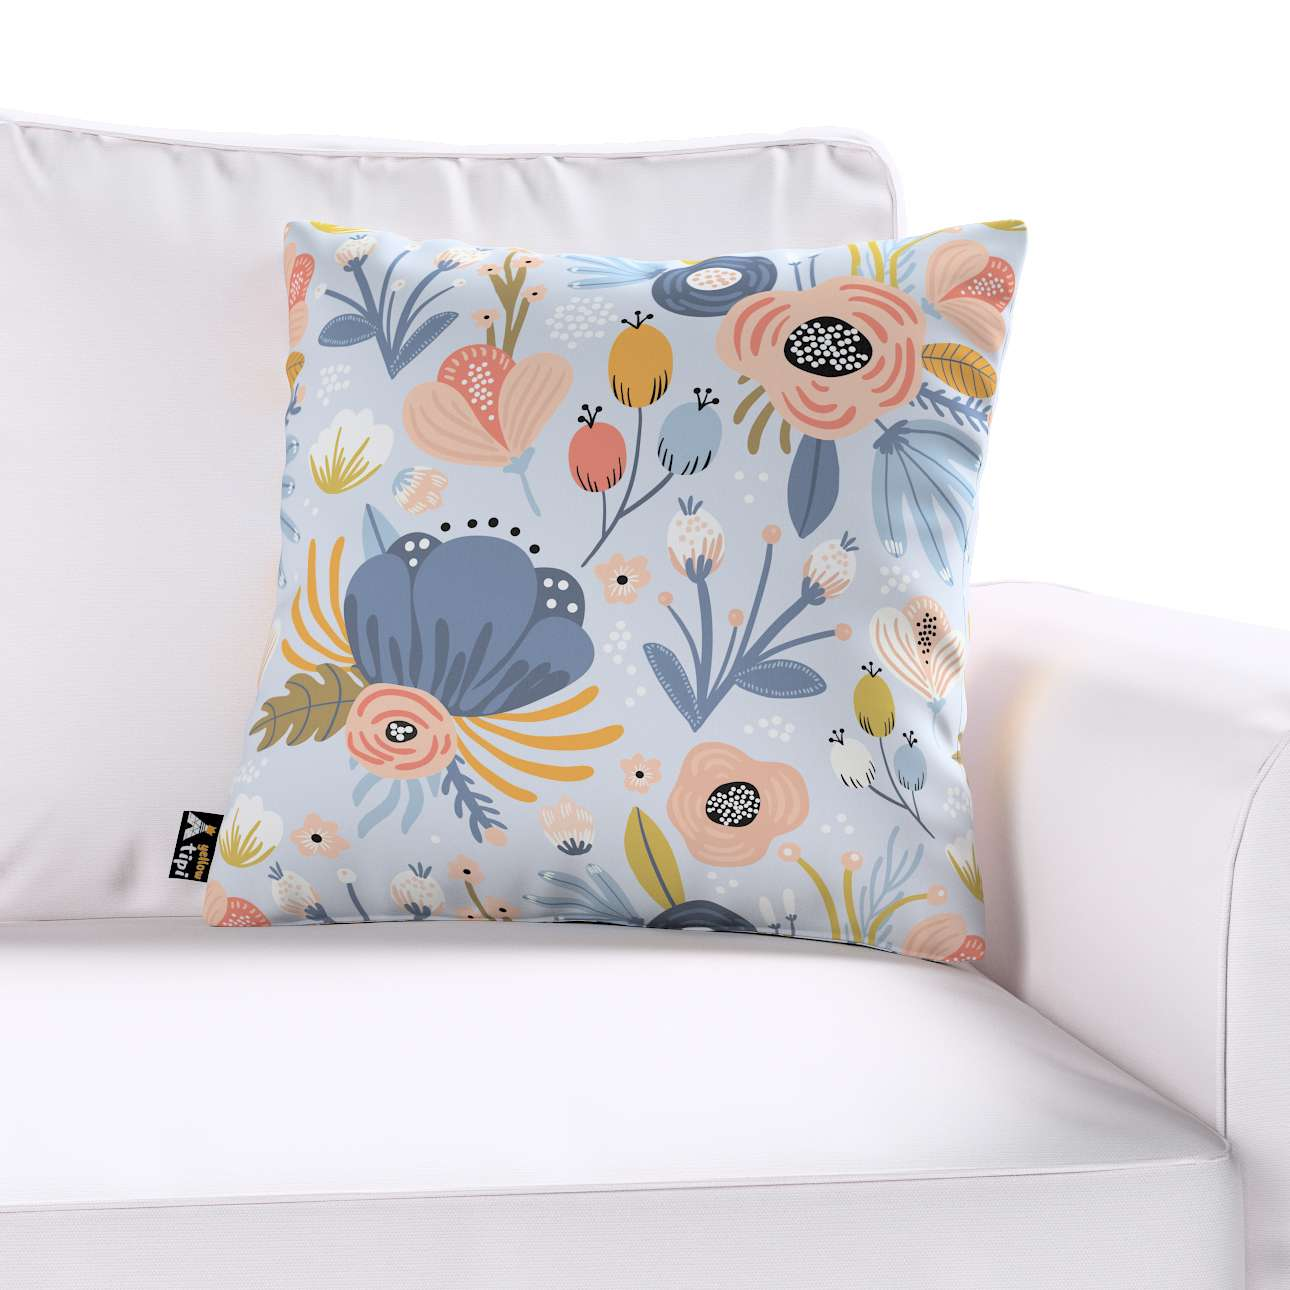 Milly cushion cover in collection Magic Collection, fabric: 500-05